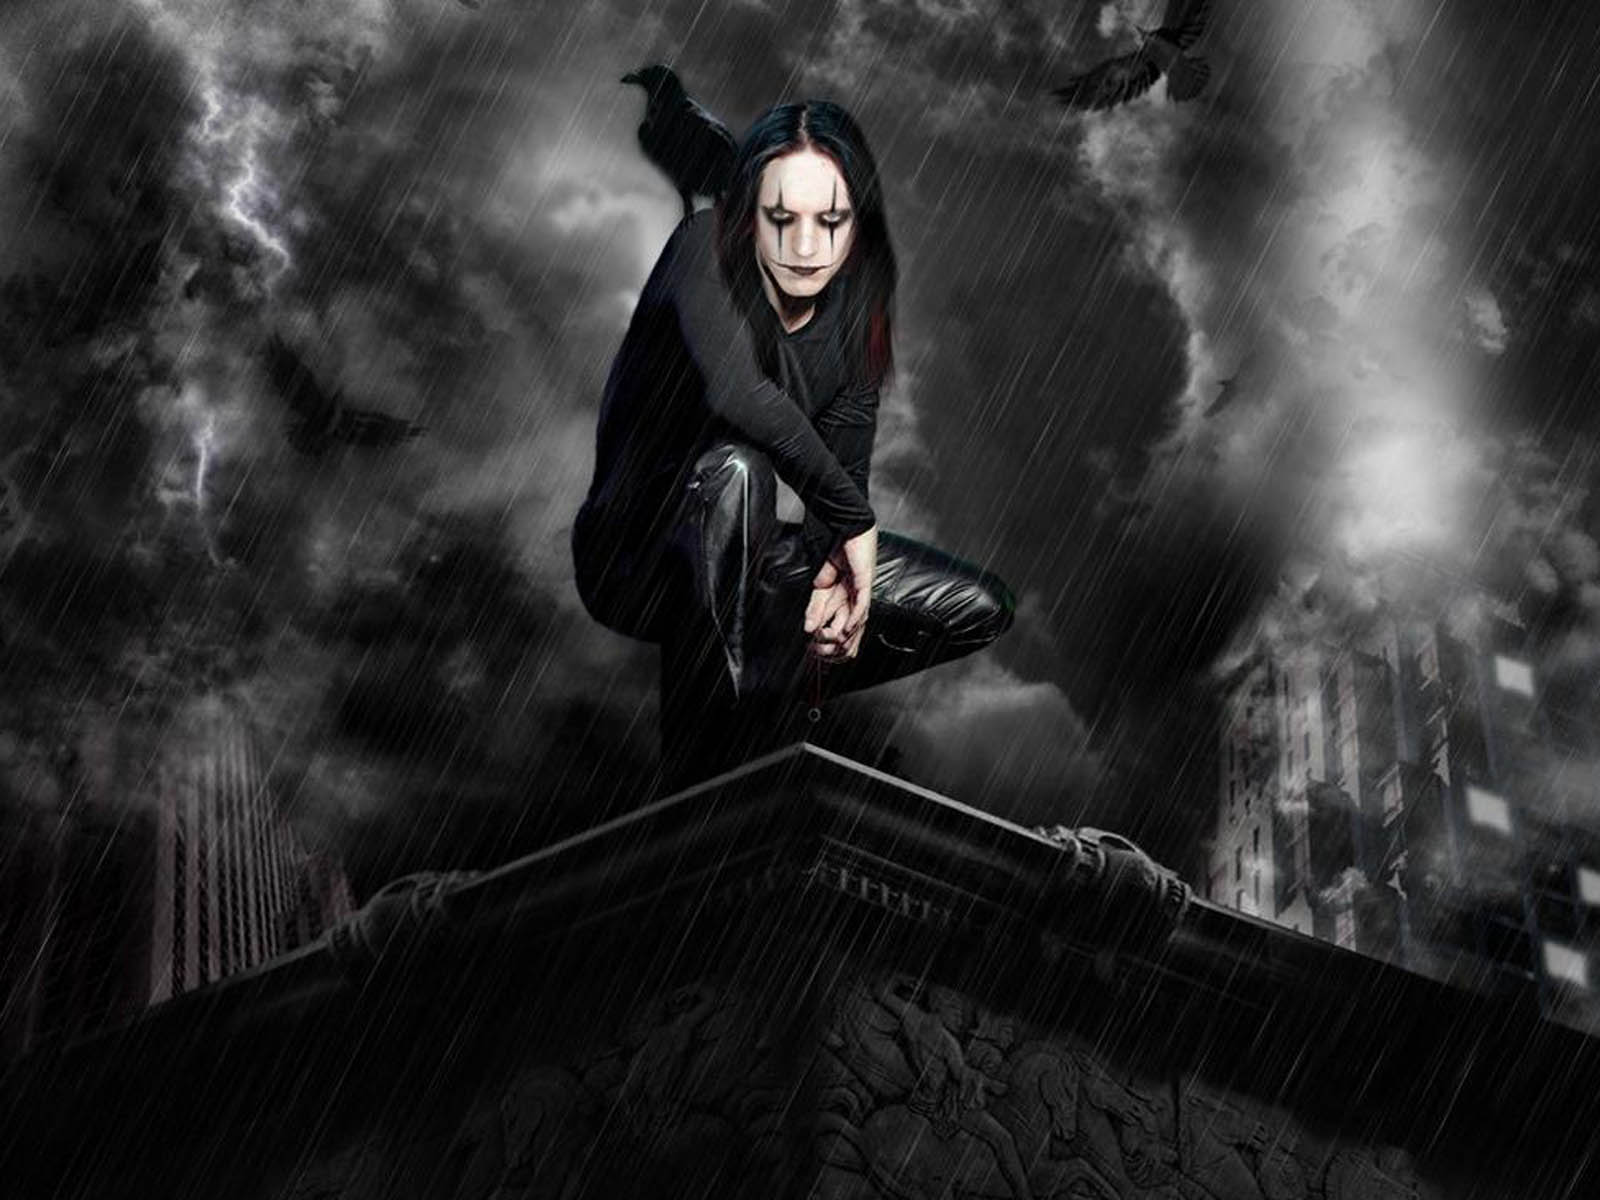 Tag Dark Gothic Wallpapers Backgrounds Paos Pictures and Images 1600x1200